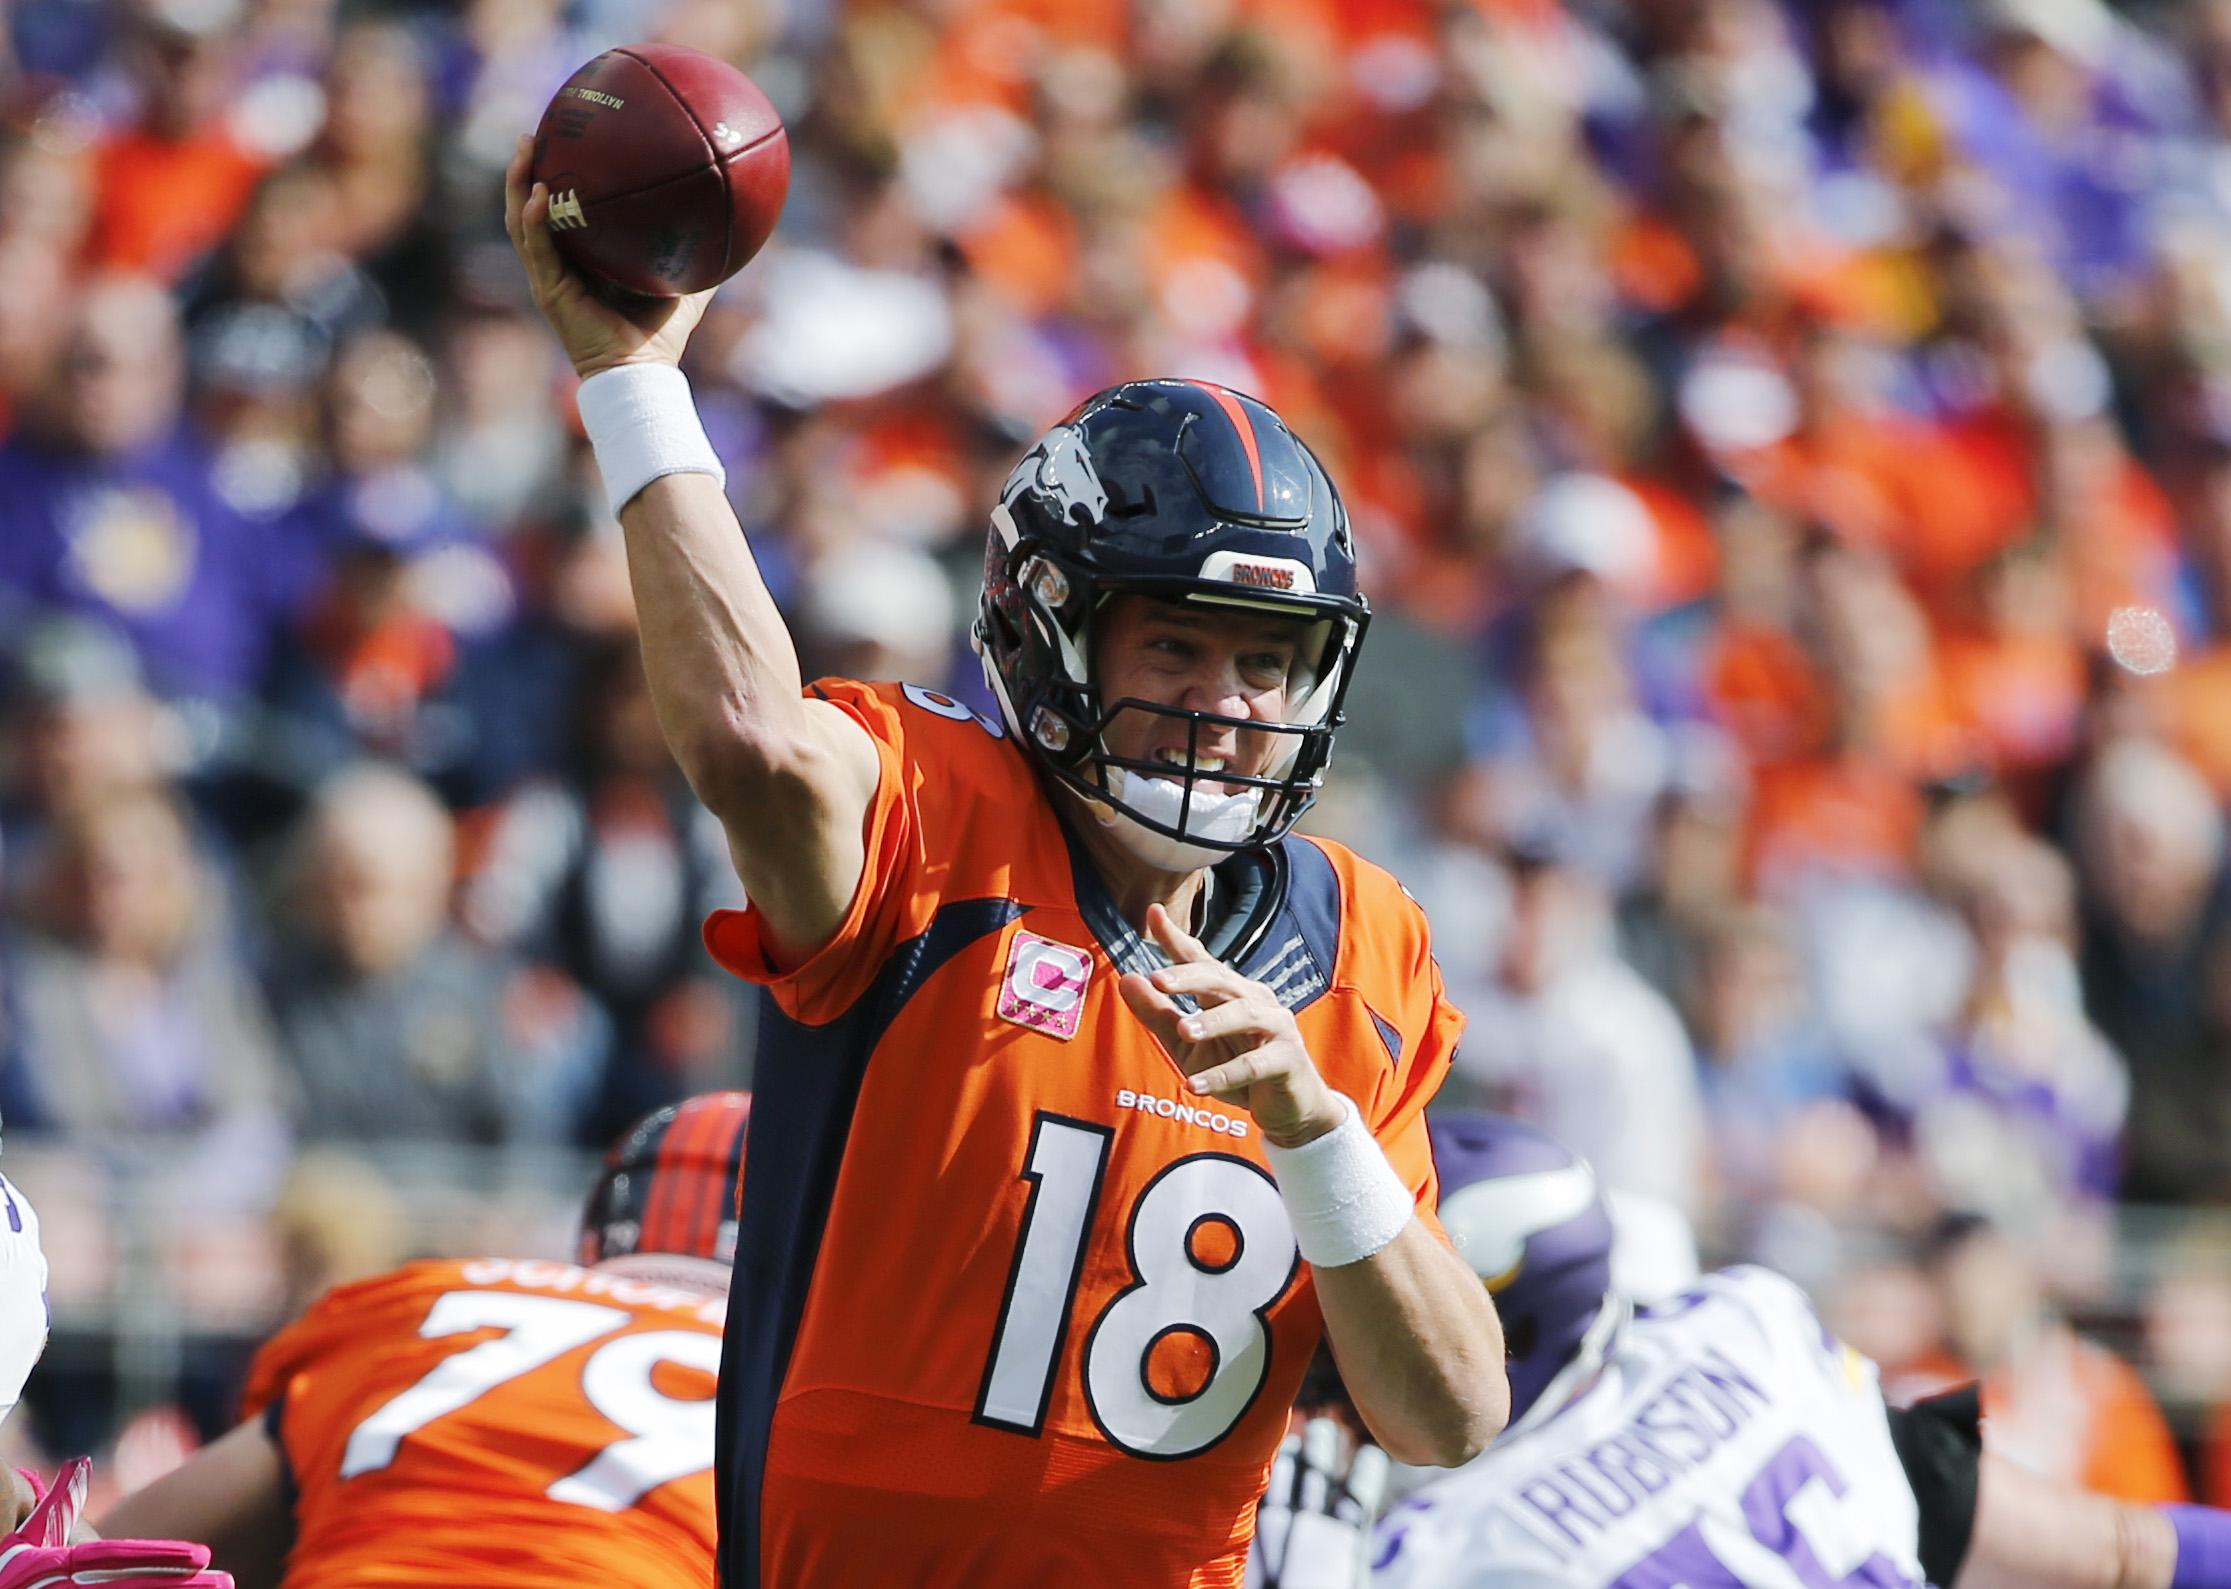 Denver Broncos quarterback Peyton Manning passes against the Minnesota Vikings during the first half of an NFL football game, Sunday, Oct. 4, 2015, in Denver. (AP Photo/Jack Dempsey)